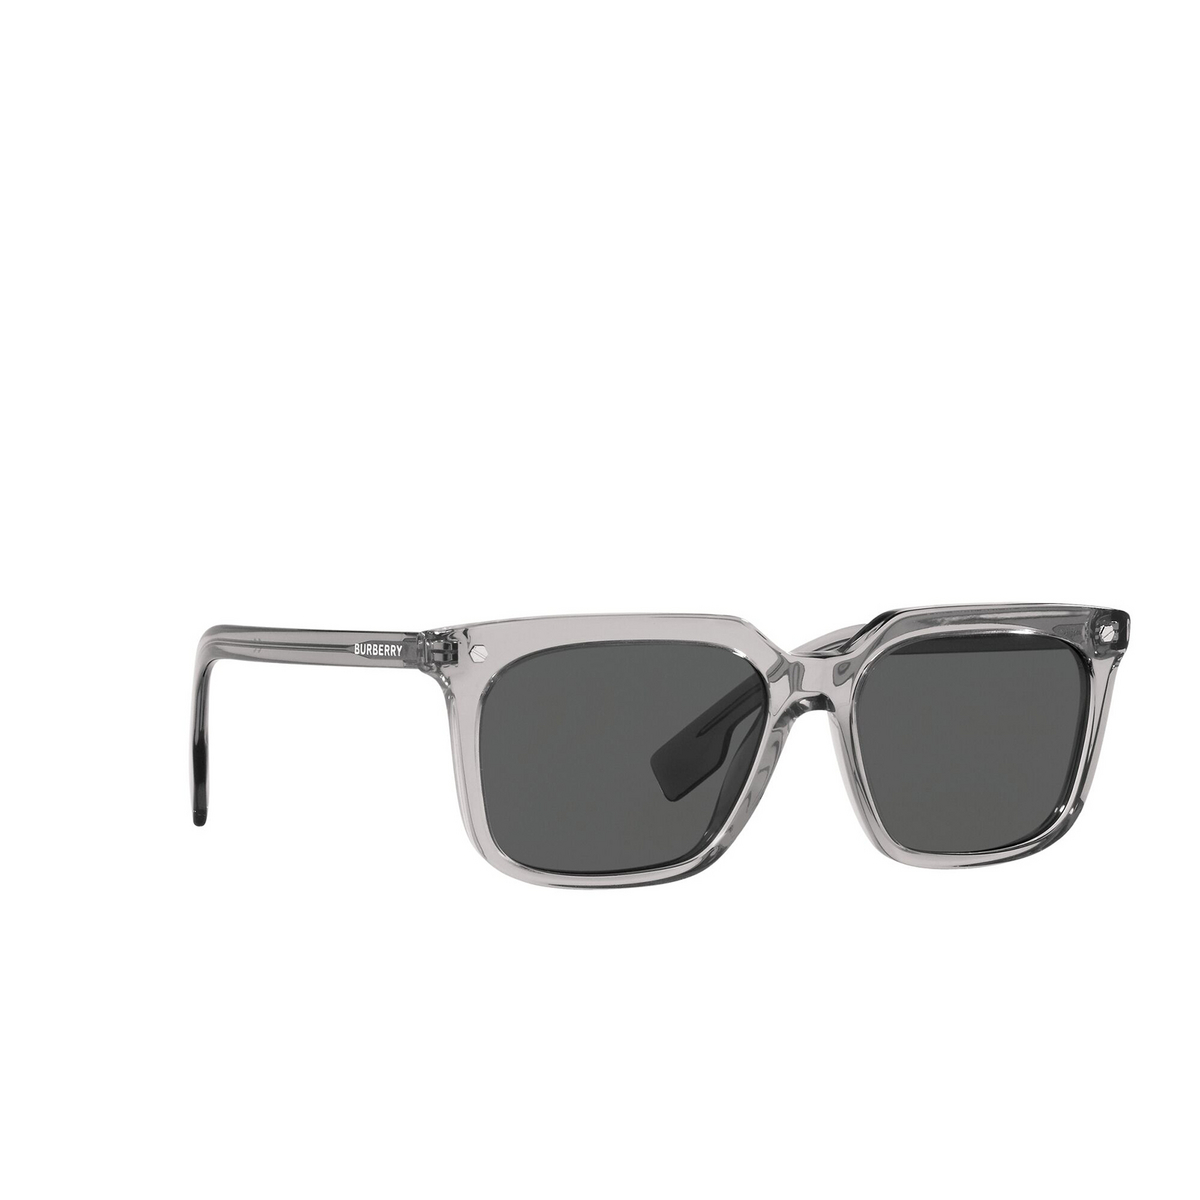 Burberry® Square Sunglasses: Carnaby BE4337 color Grey 302887 - three-quarters view.